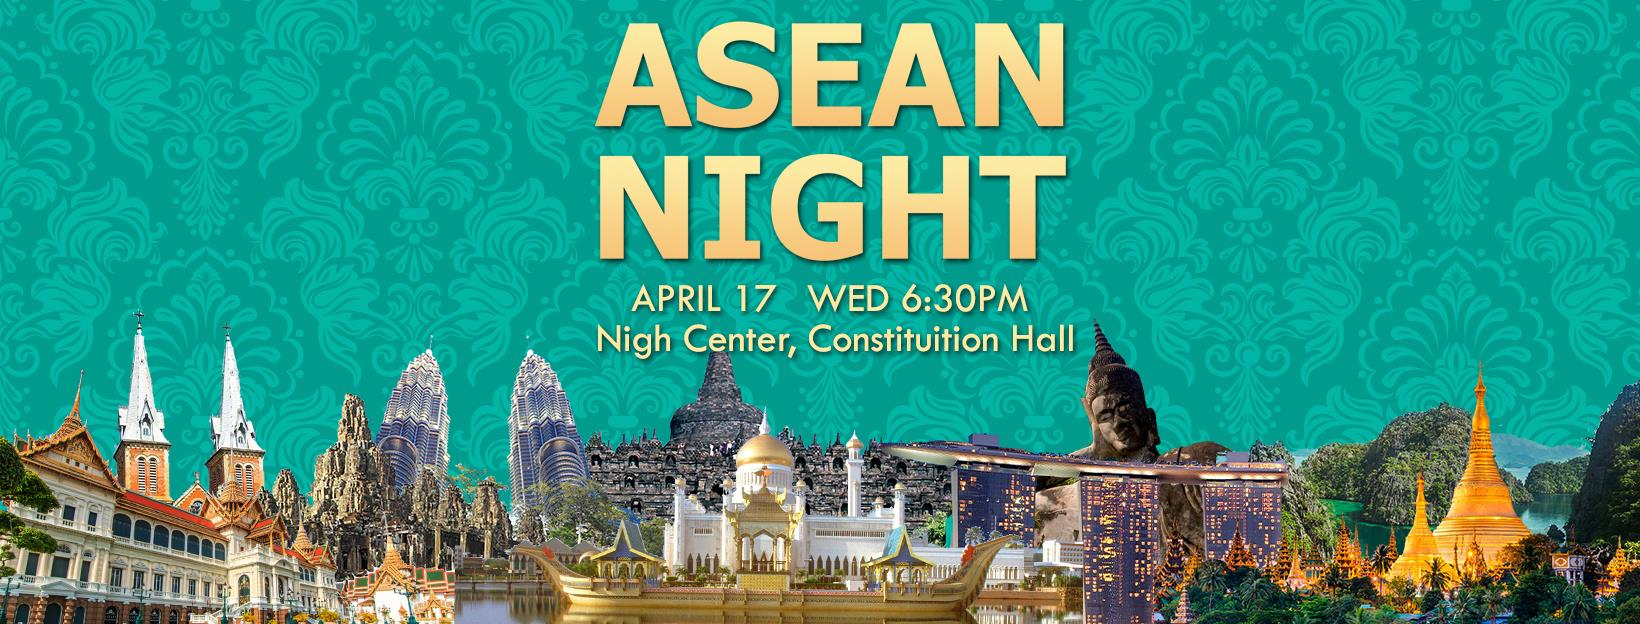 New Southeast Asian Student Organization Hosts First Event